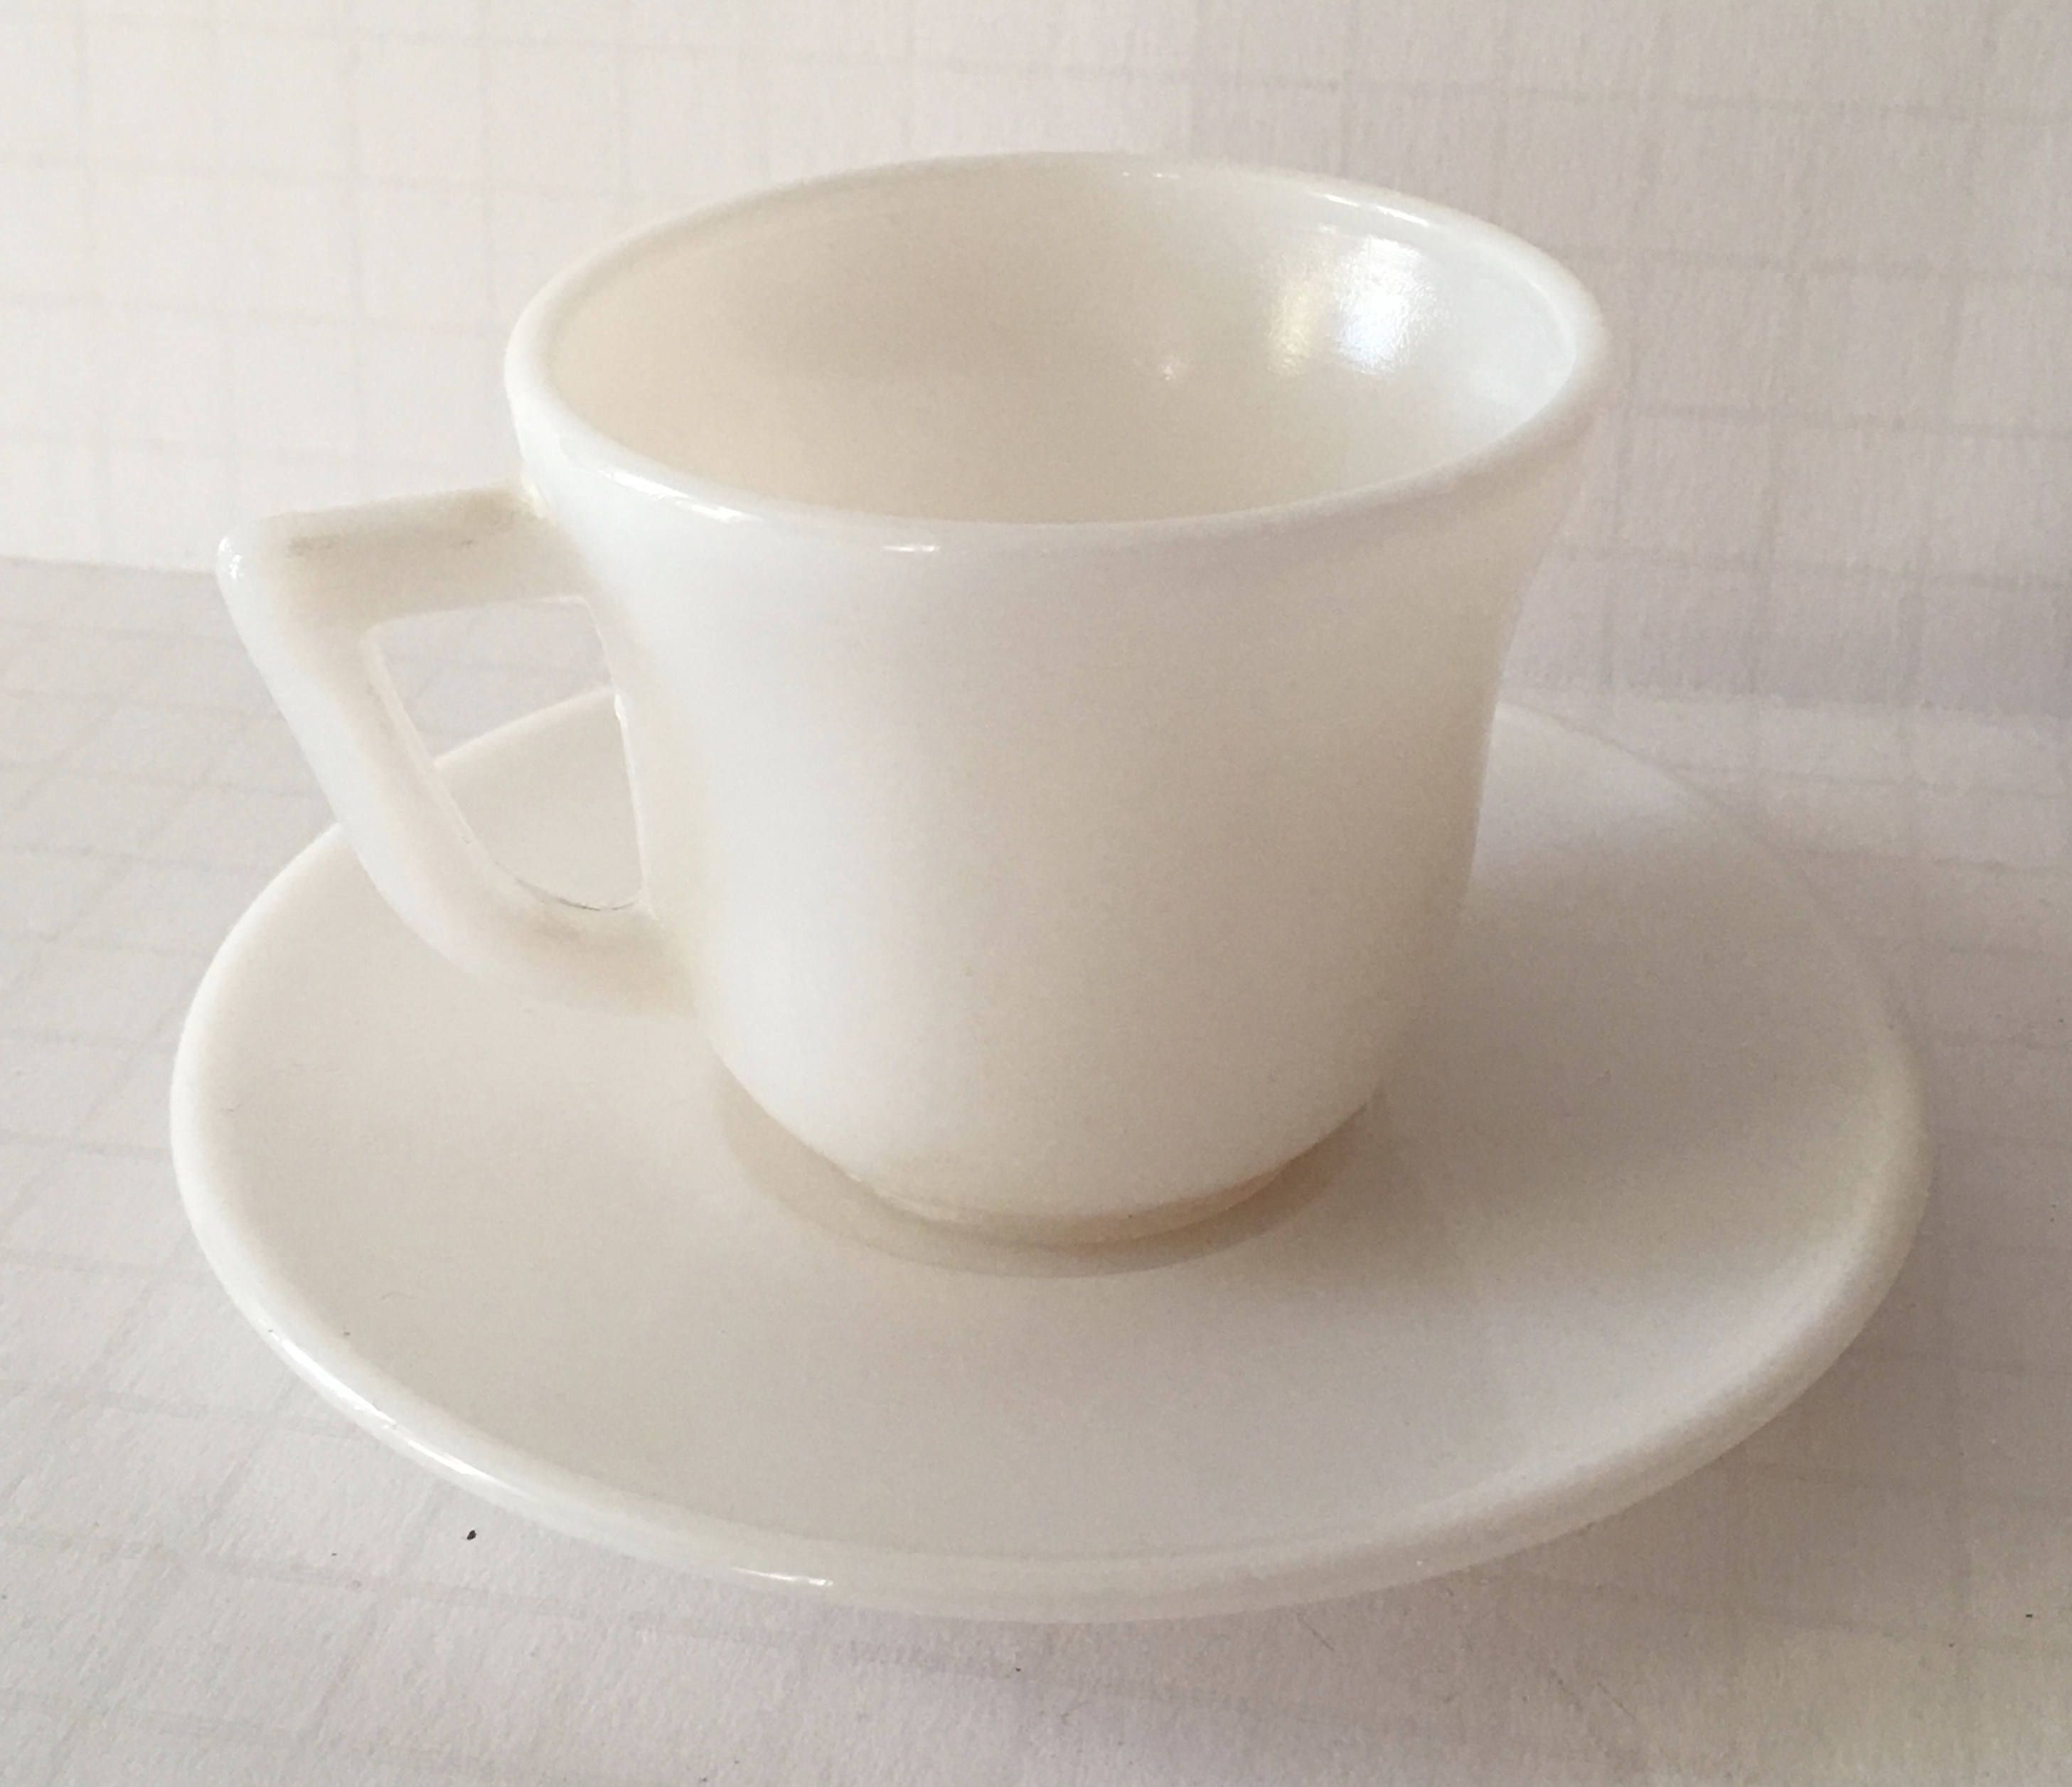 Small Coffee Cups And Saucers Vintage Milk Glass Demitasse Cup And Saucer Small Plain White